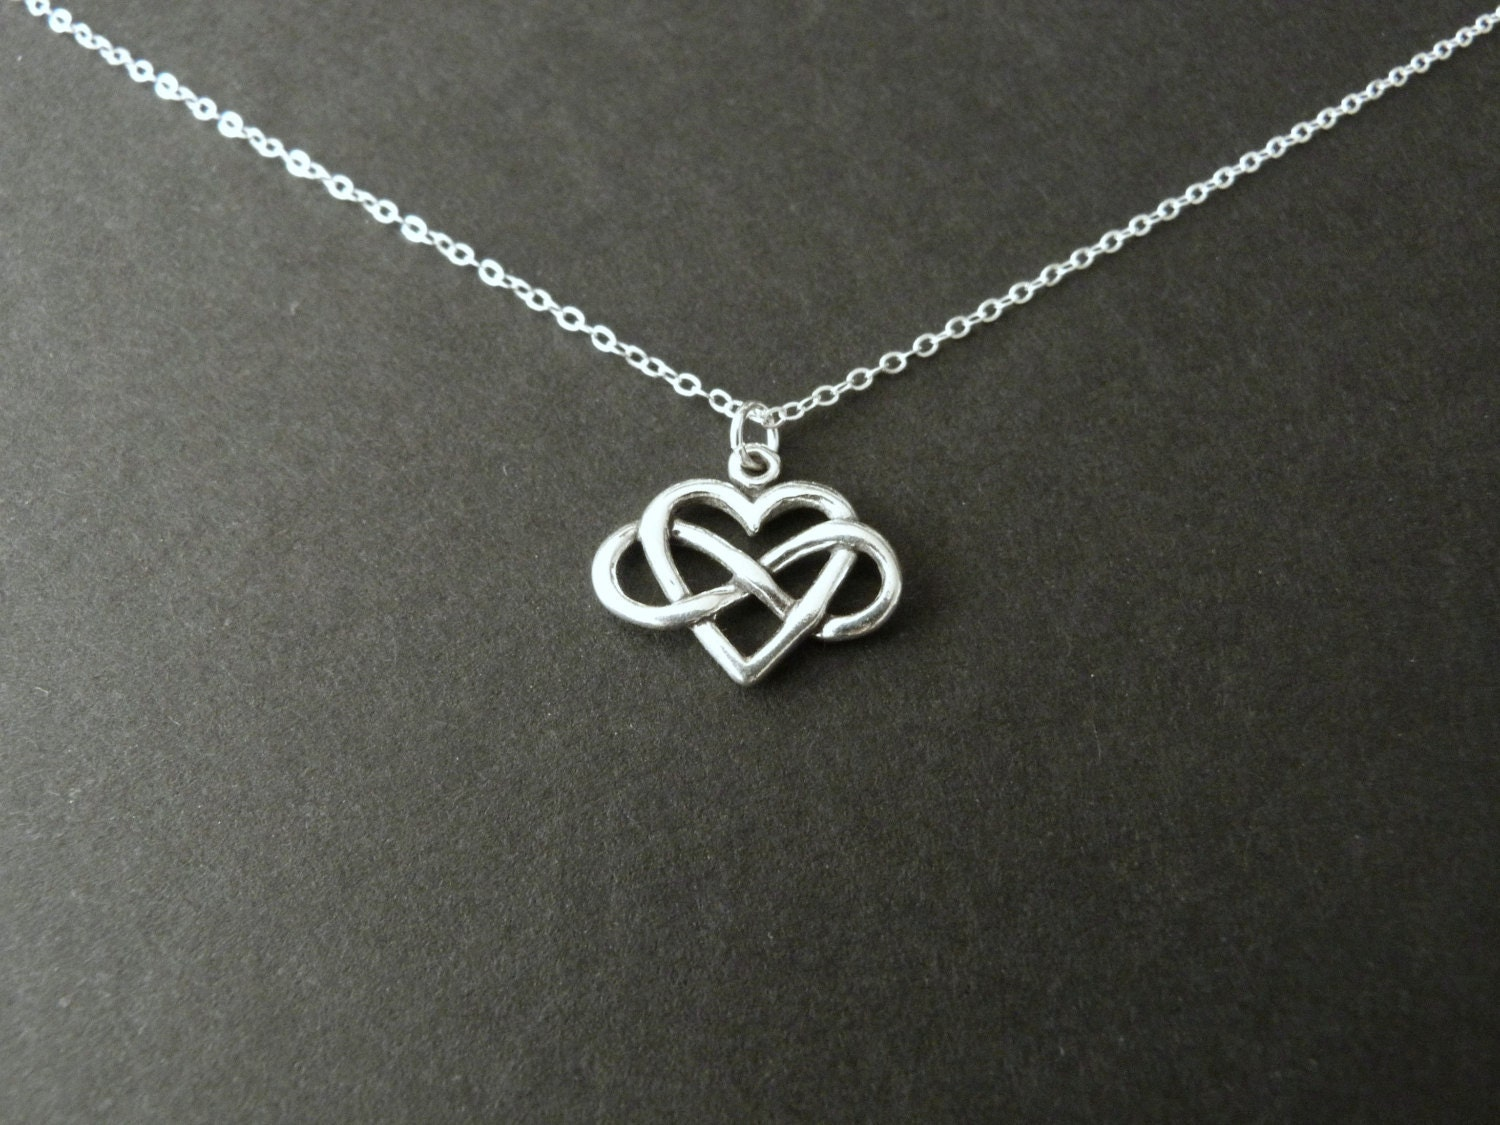 Girlfriend gift infinity heart necklace best seller always